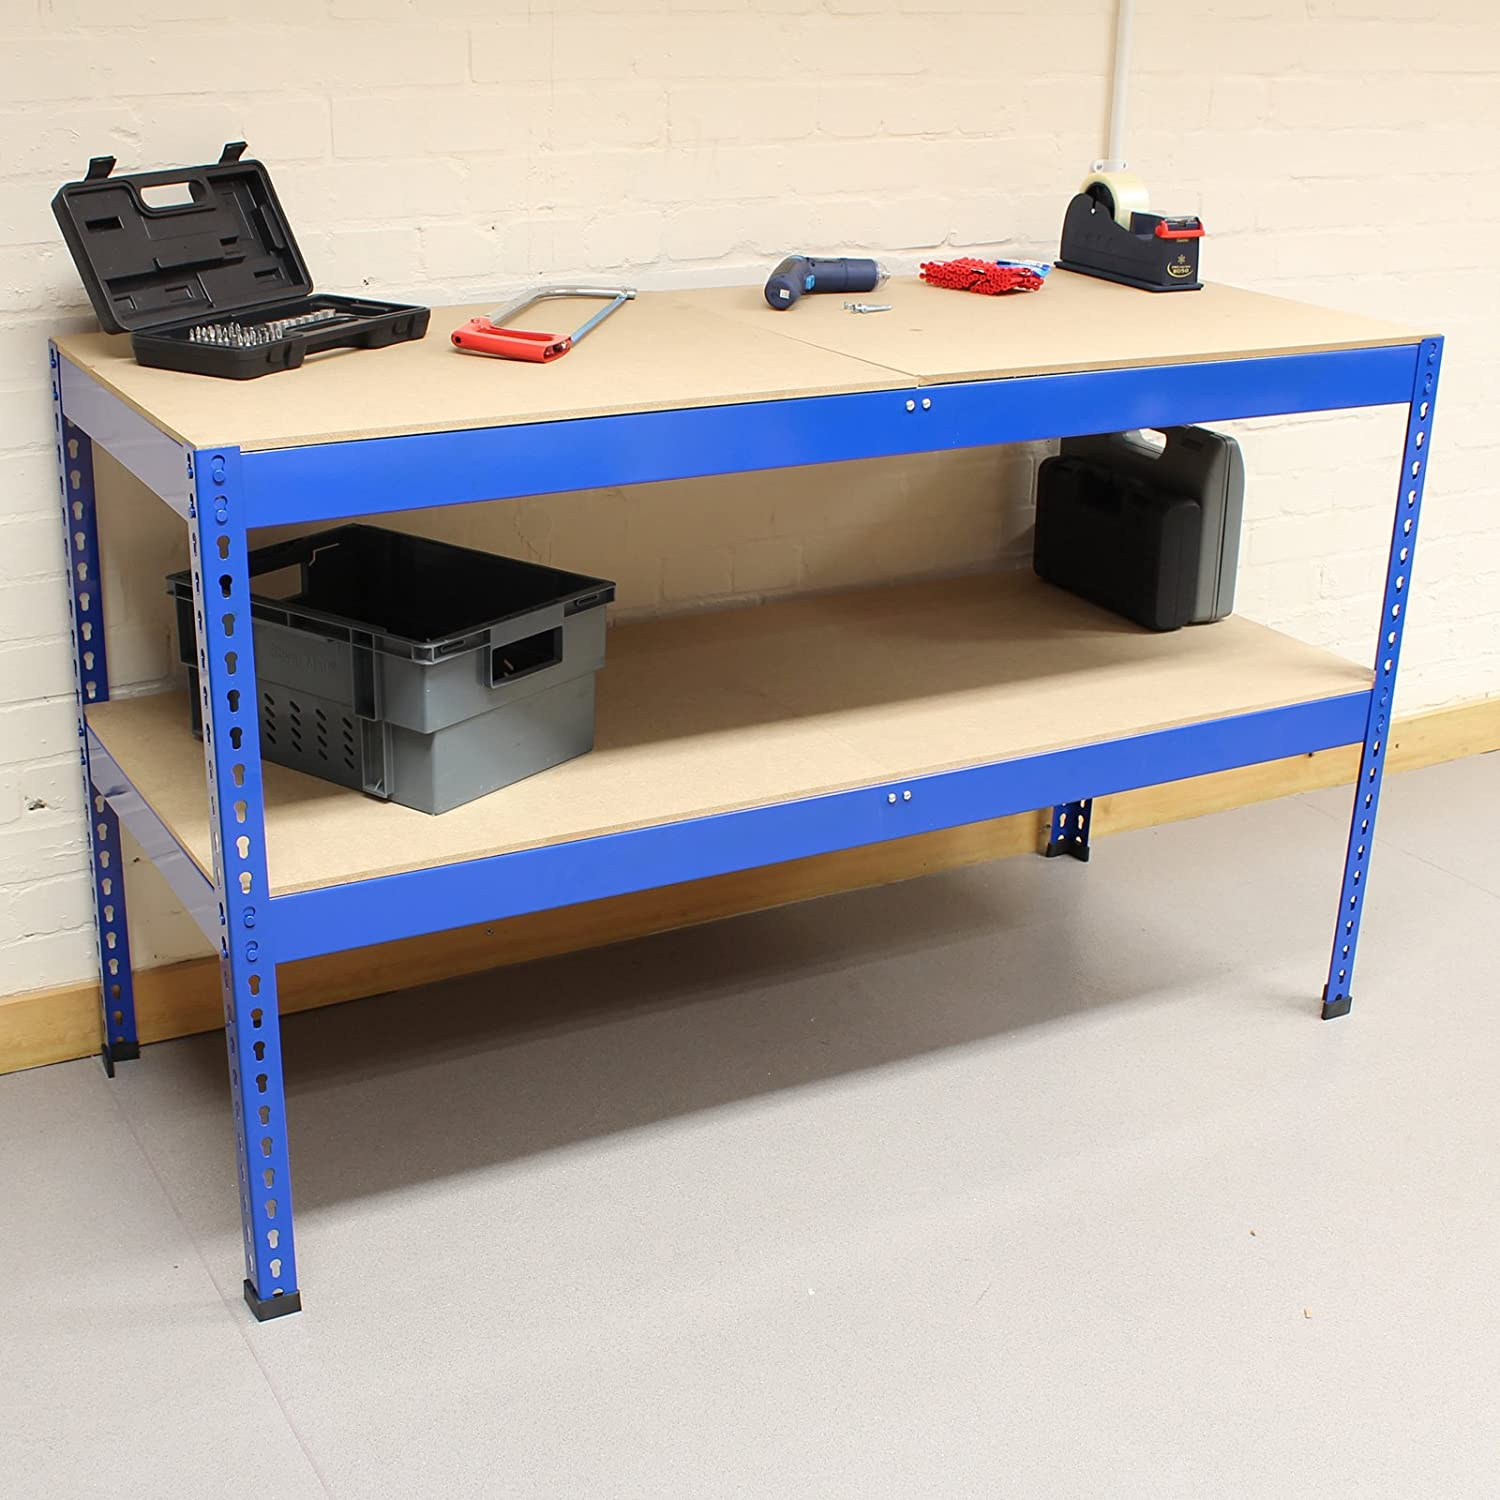 Hardcastle 1.5m Steel Work Bench with 2 Shelves - Blue